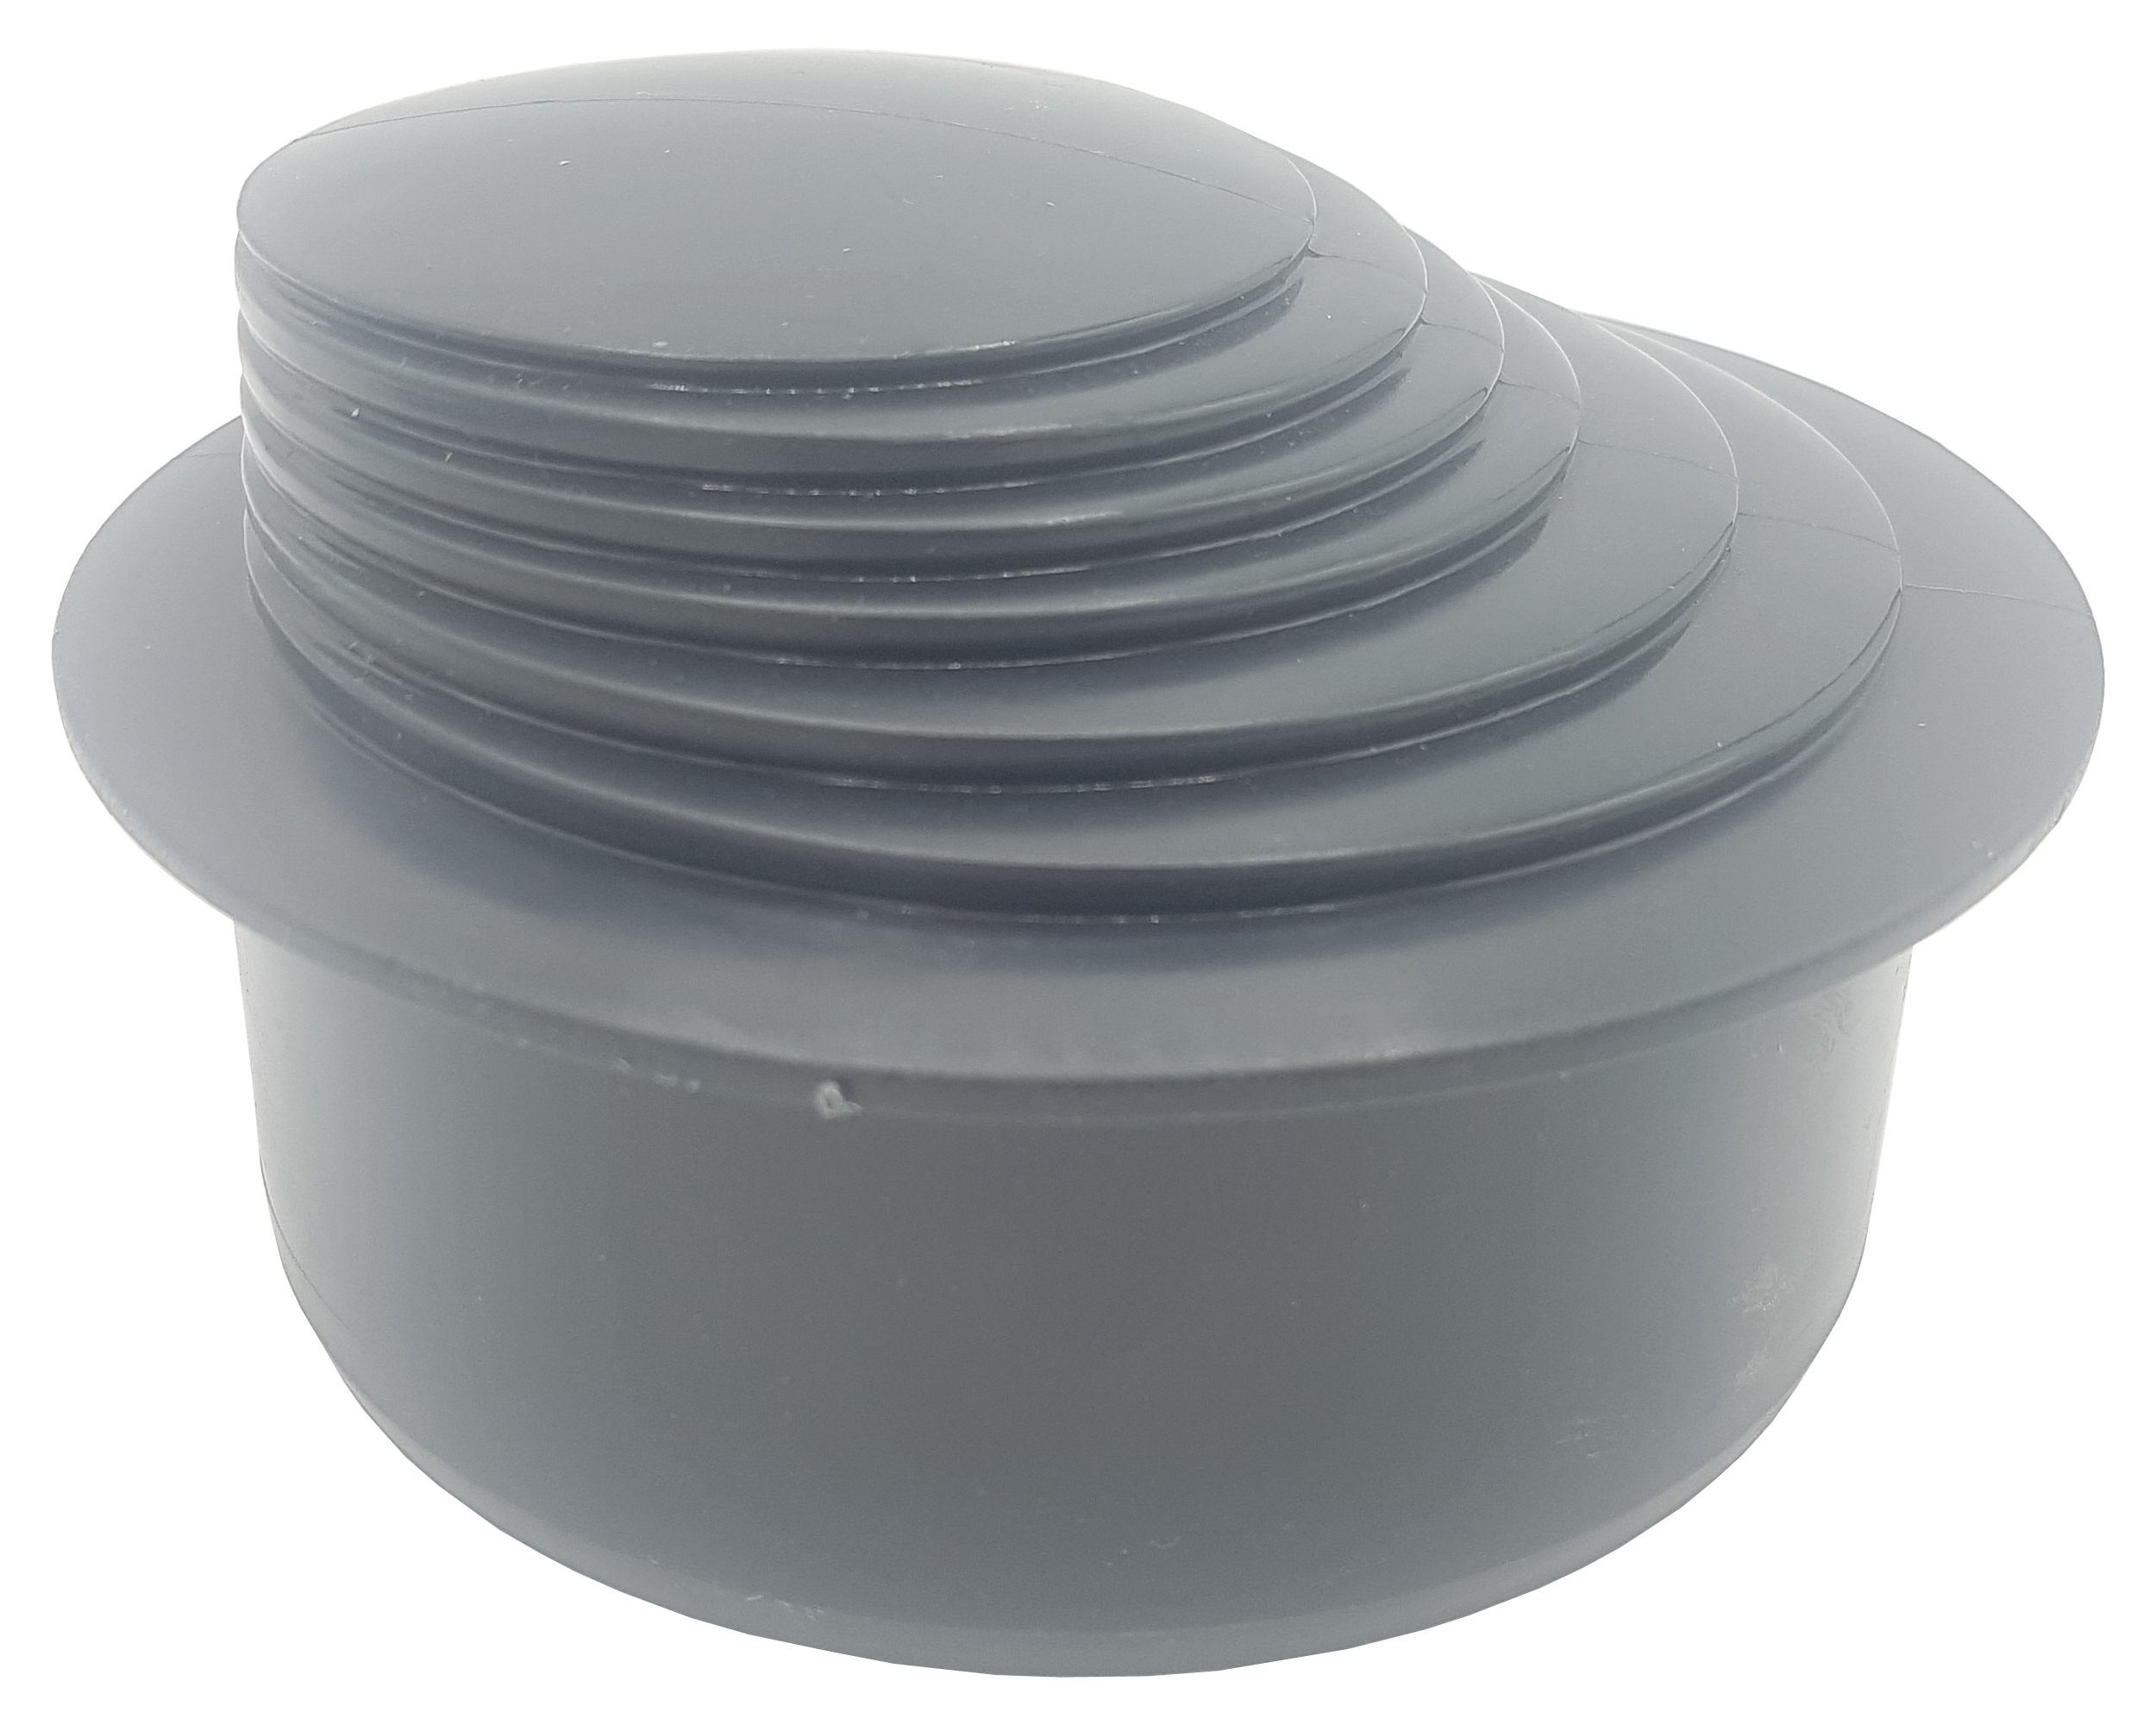 Dark Green Colour Gutter Down Pipe Reducer 110mm to Any Size Reduction Guttering